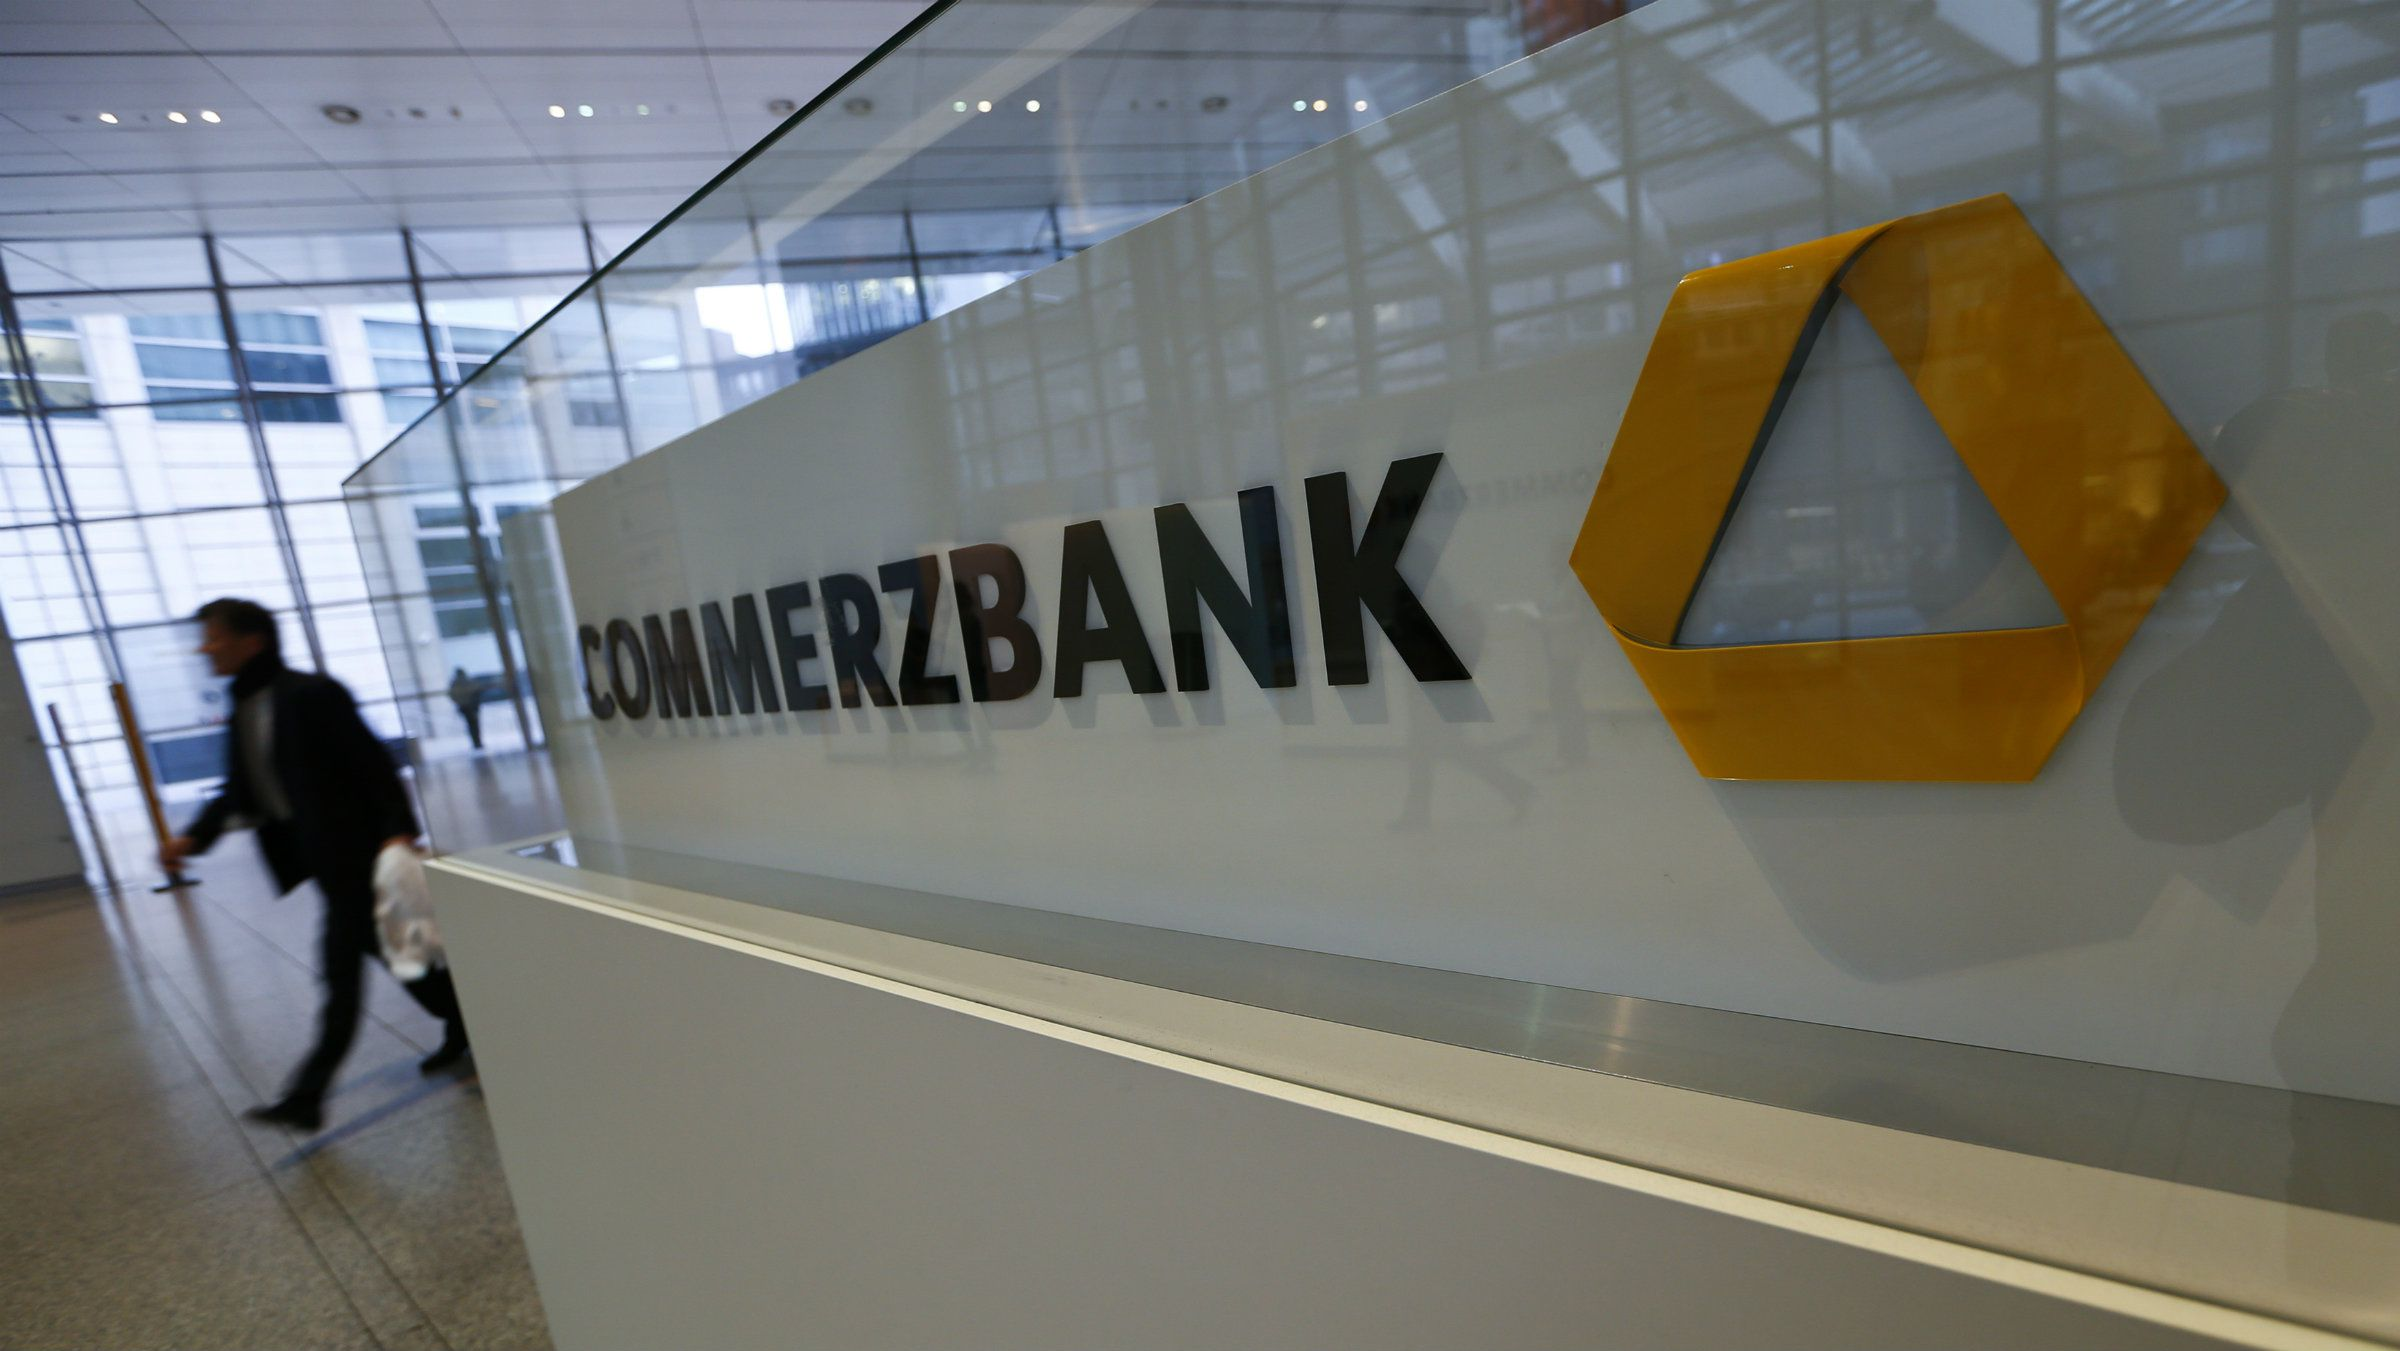 A man walks past a logo of Commerzbank ahead of the bank's annual news conference in Frankfurt.